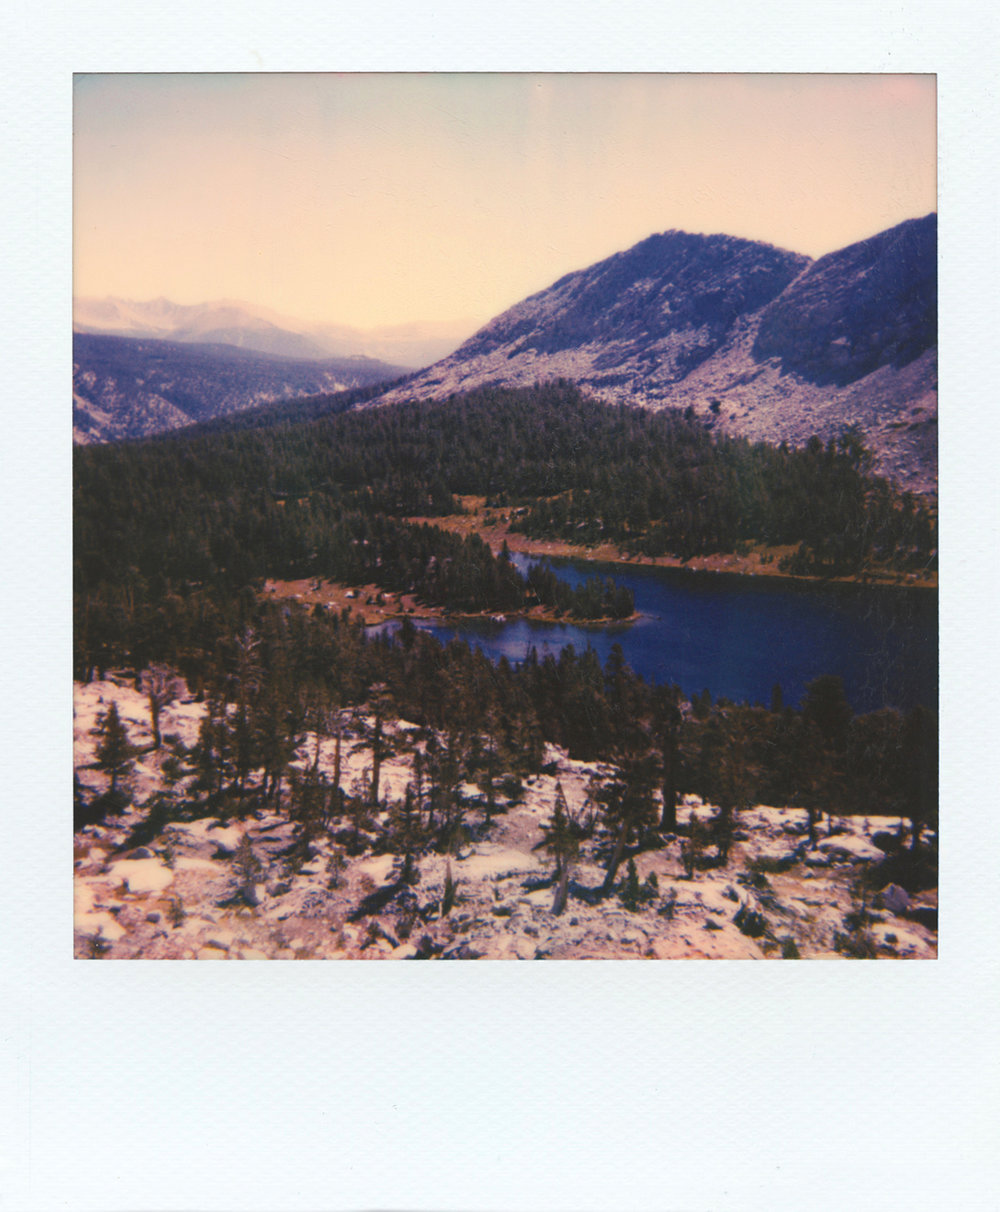 Little Five Lakes | Polaroid Sun 660AF | Polaroid Originals 600 Color | Michael Behlen